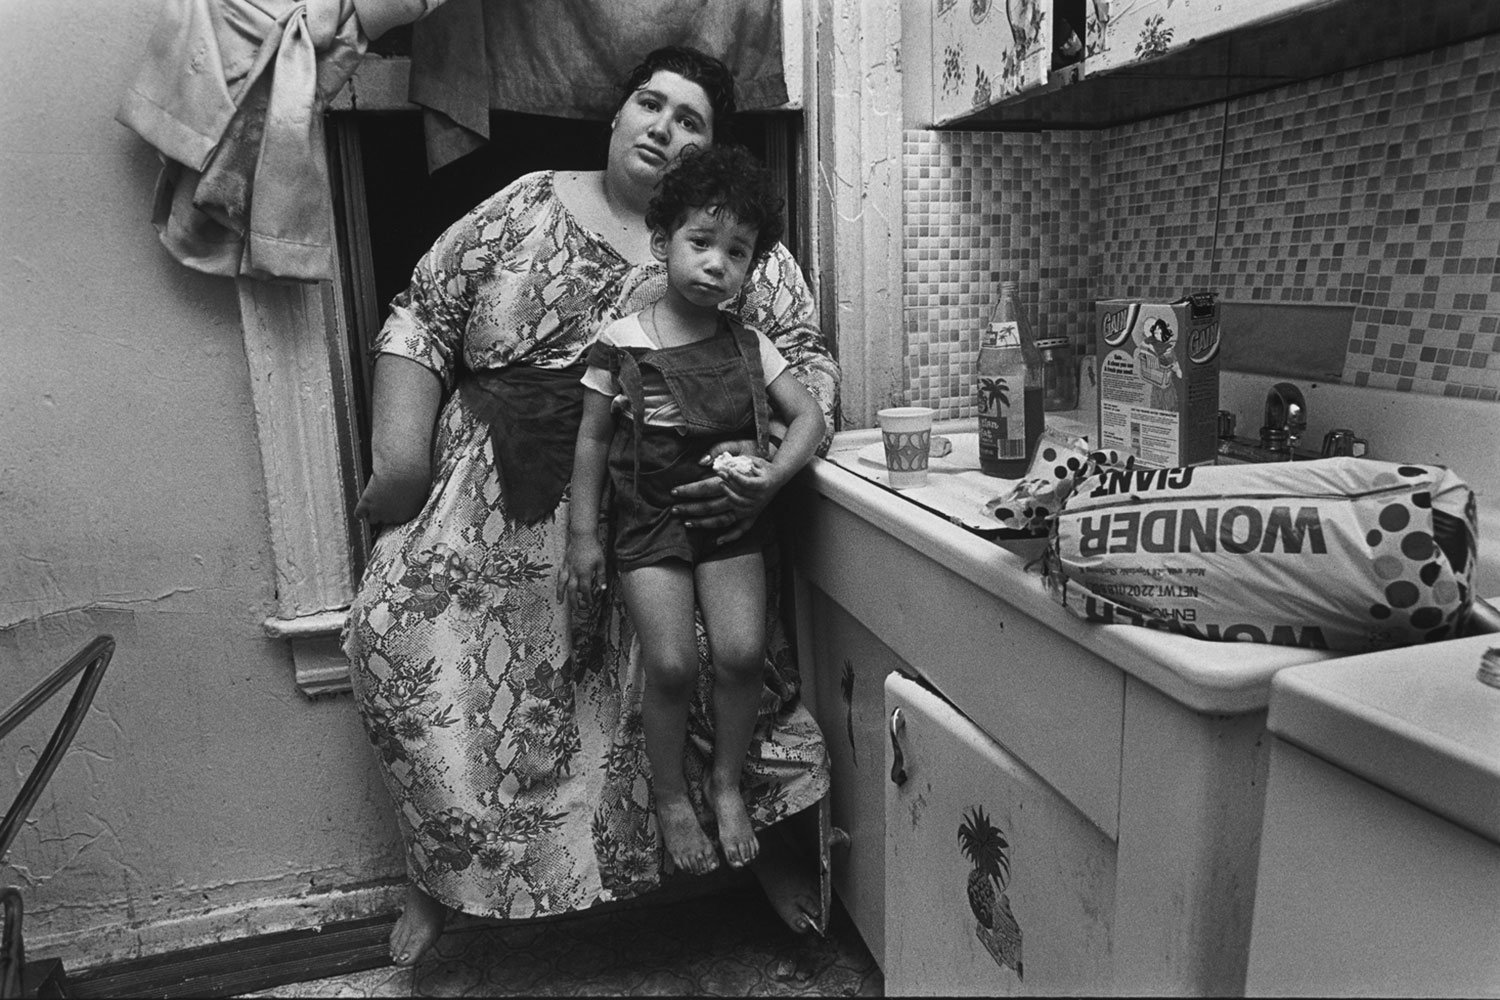 Jeanette's neighbors in their kitchen, Brooklyn, New York, 1979 © Mary Ellen Mark